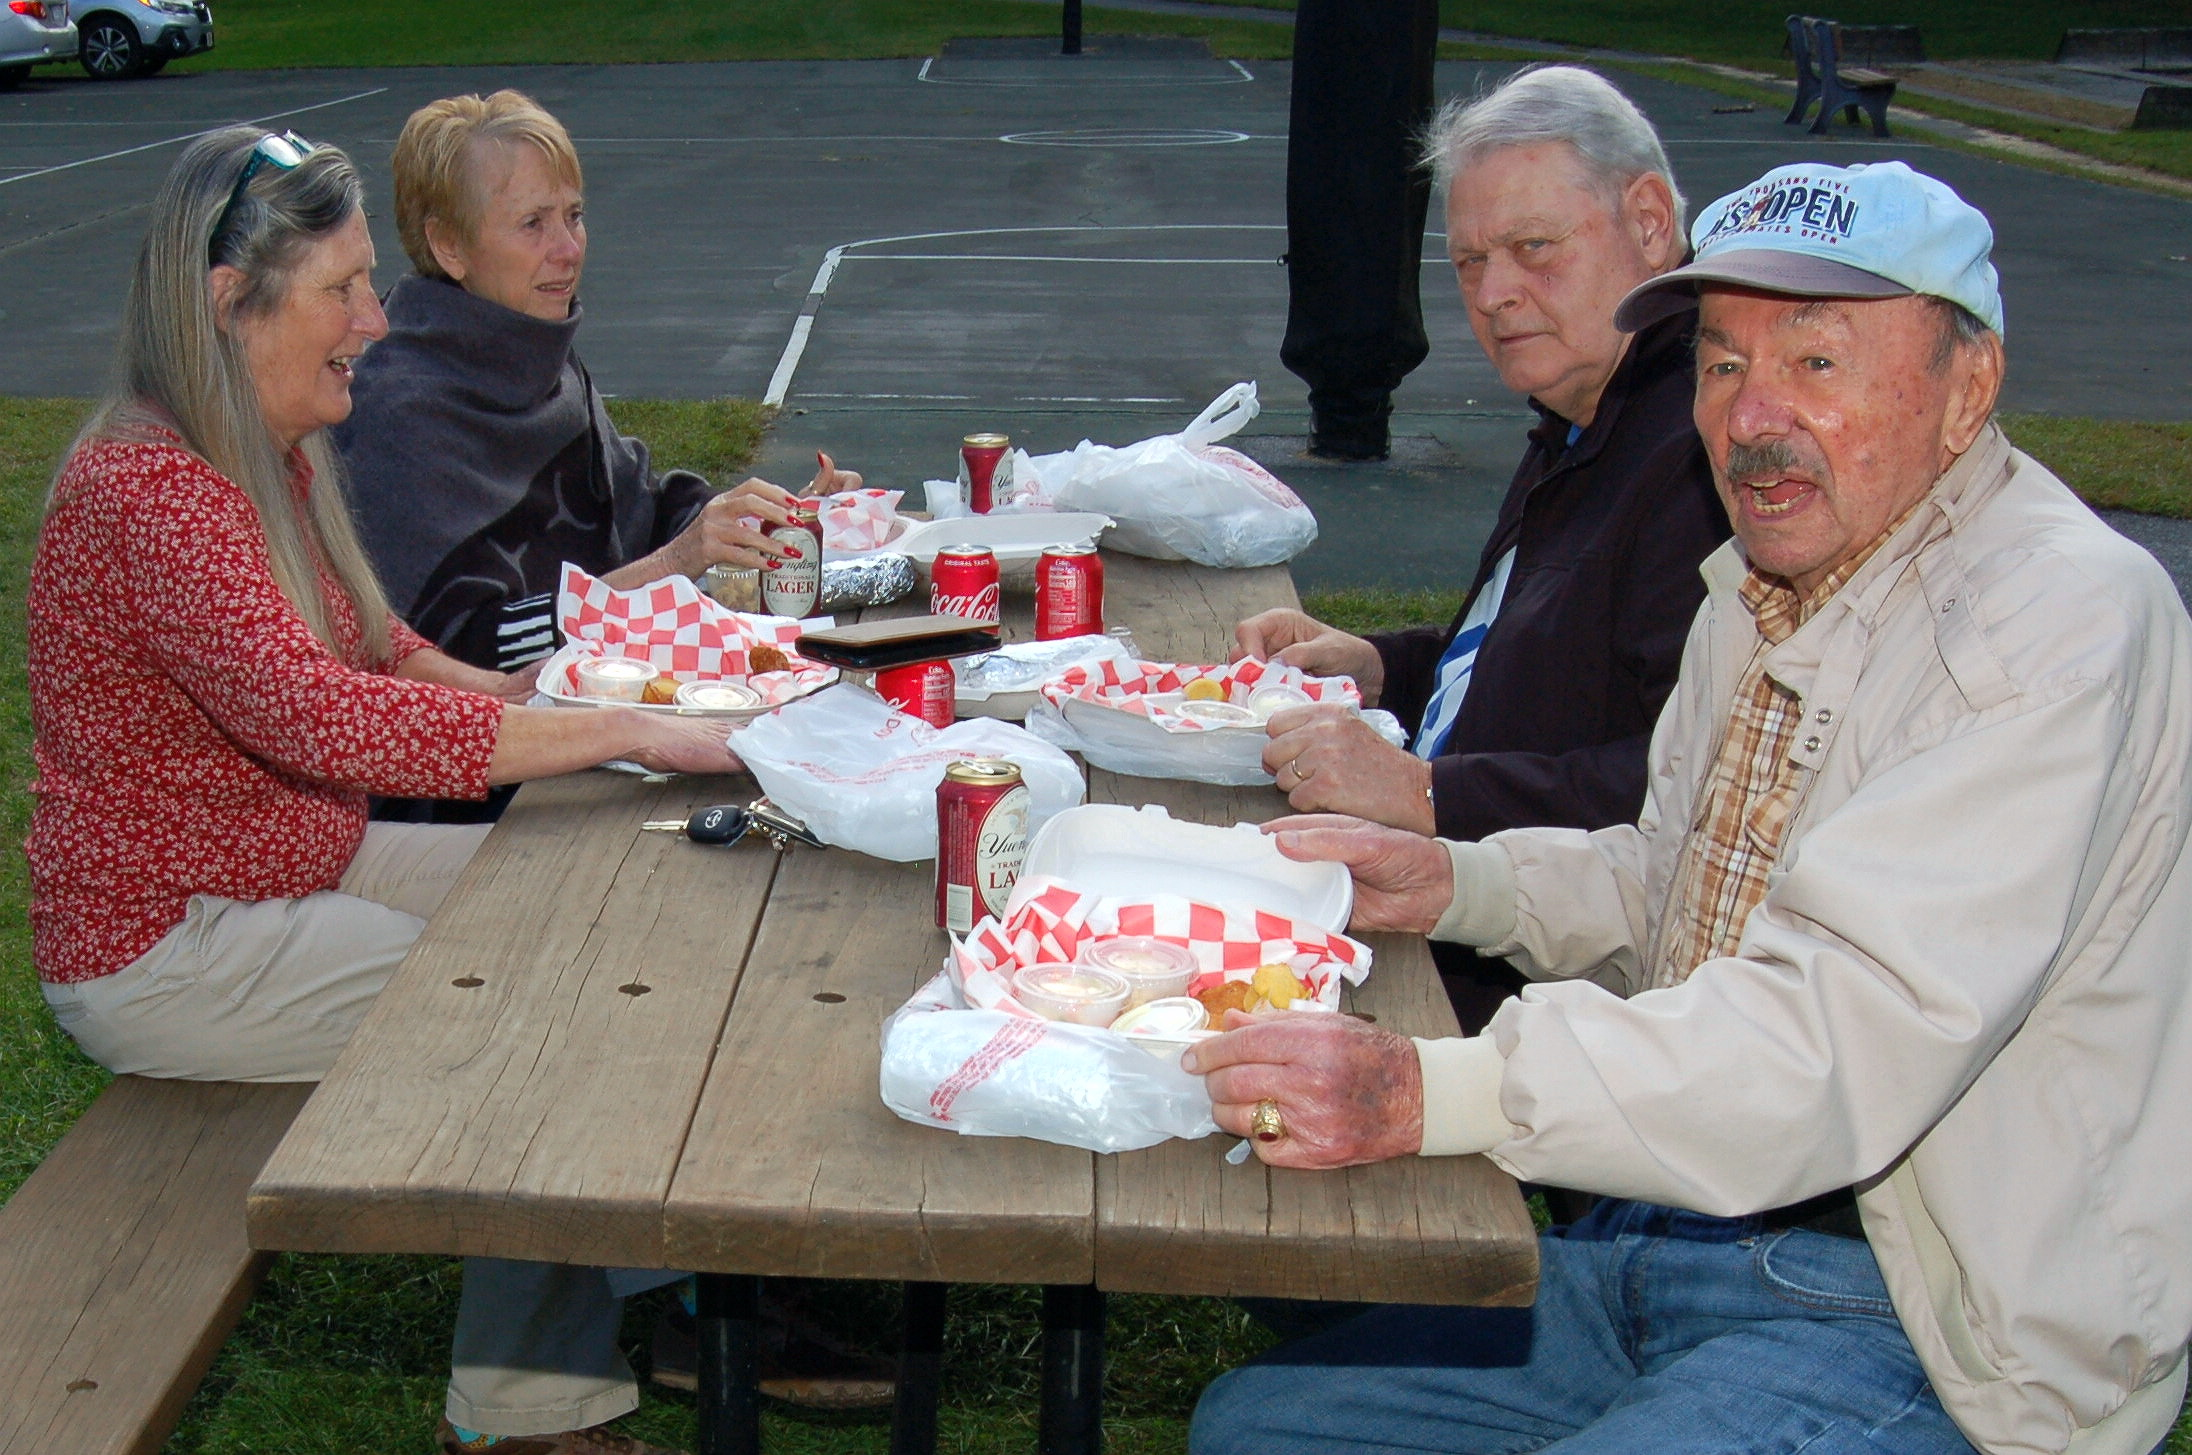 Some of the diners enjoyed their dinners at picnic tables in the park